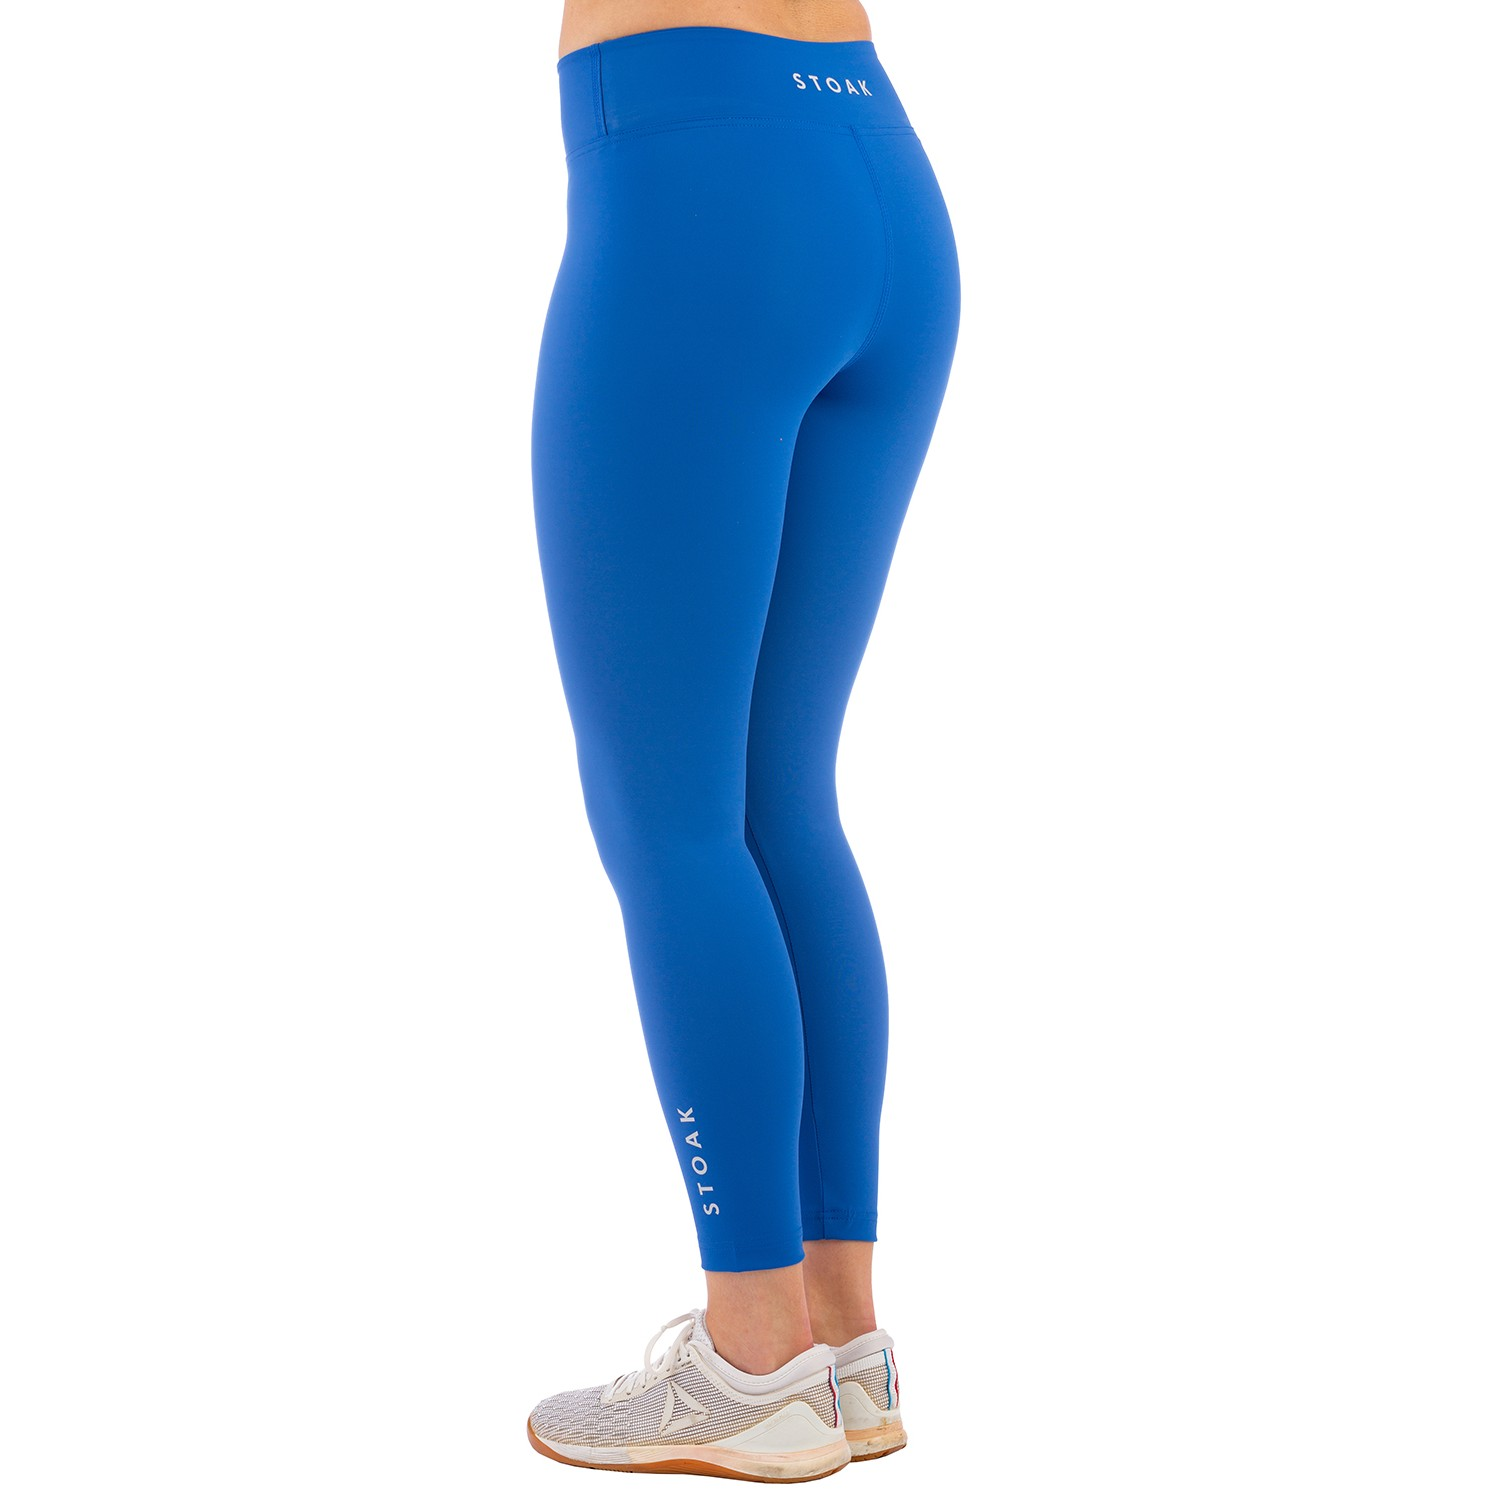 STOAK COOL RUNNINGS Performance Leggings